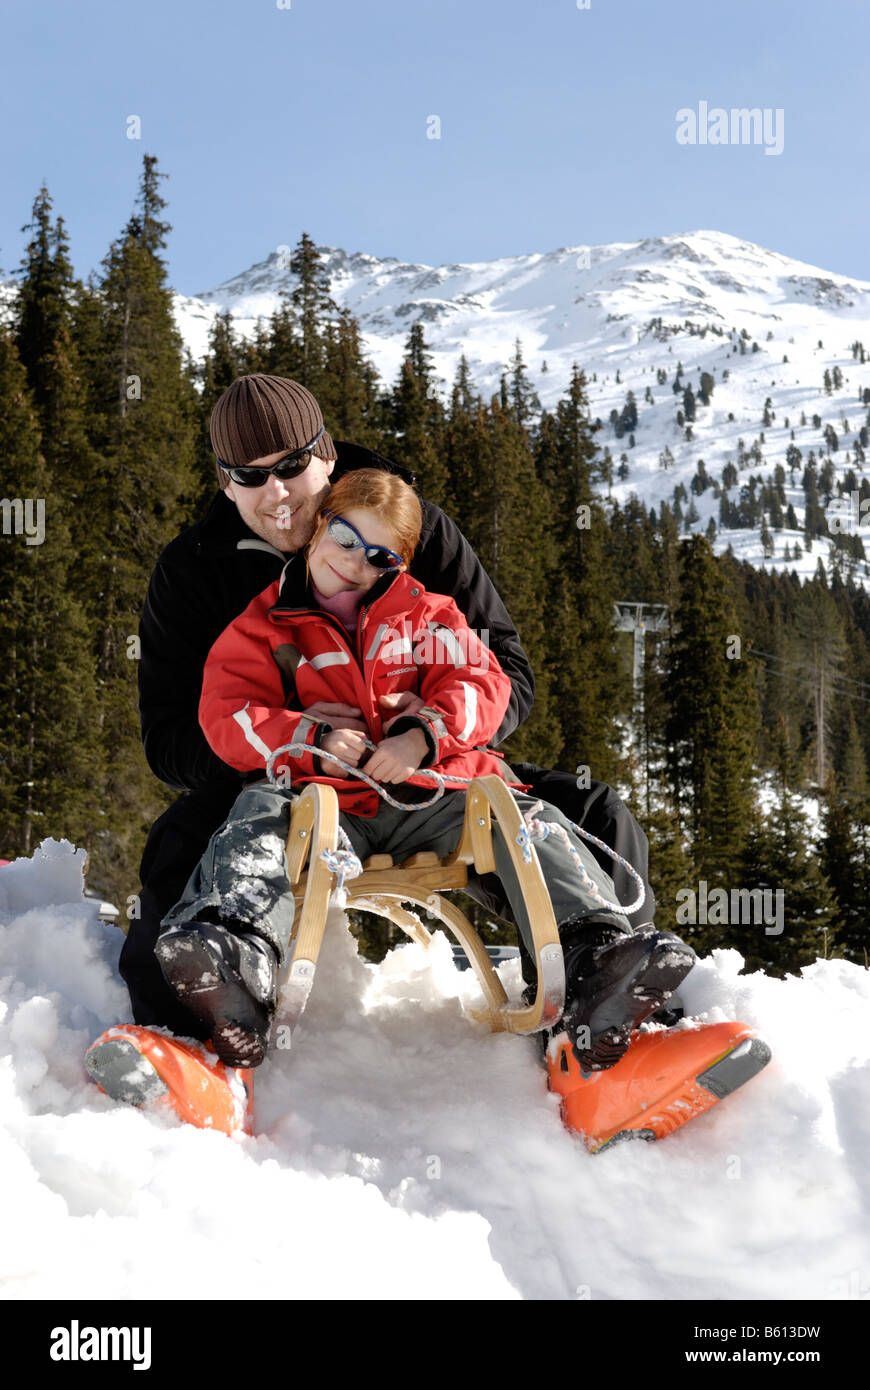 Father and daughter riding a sledge - Stock Image